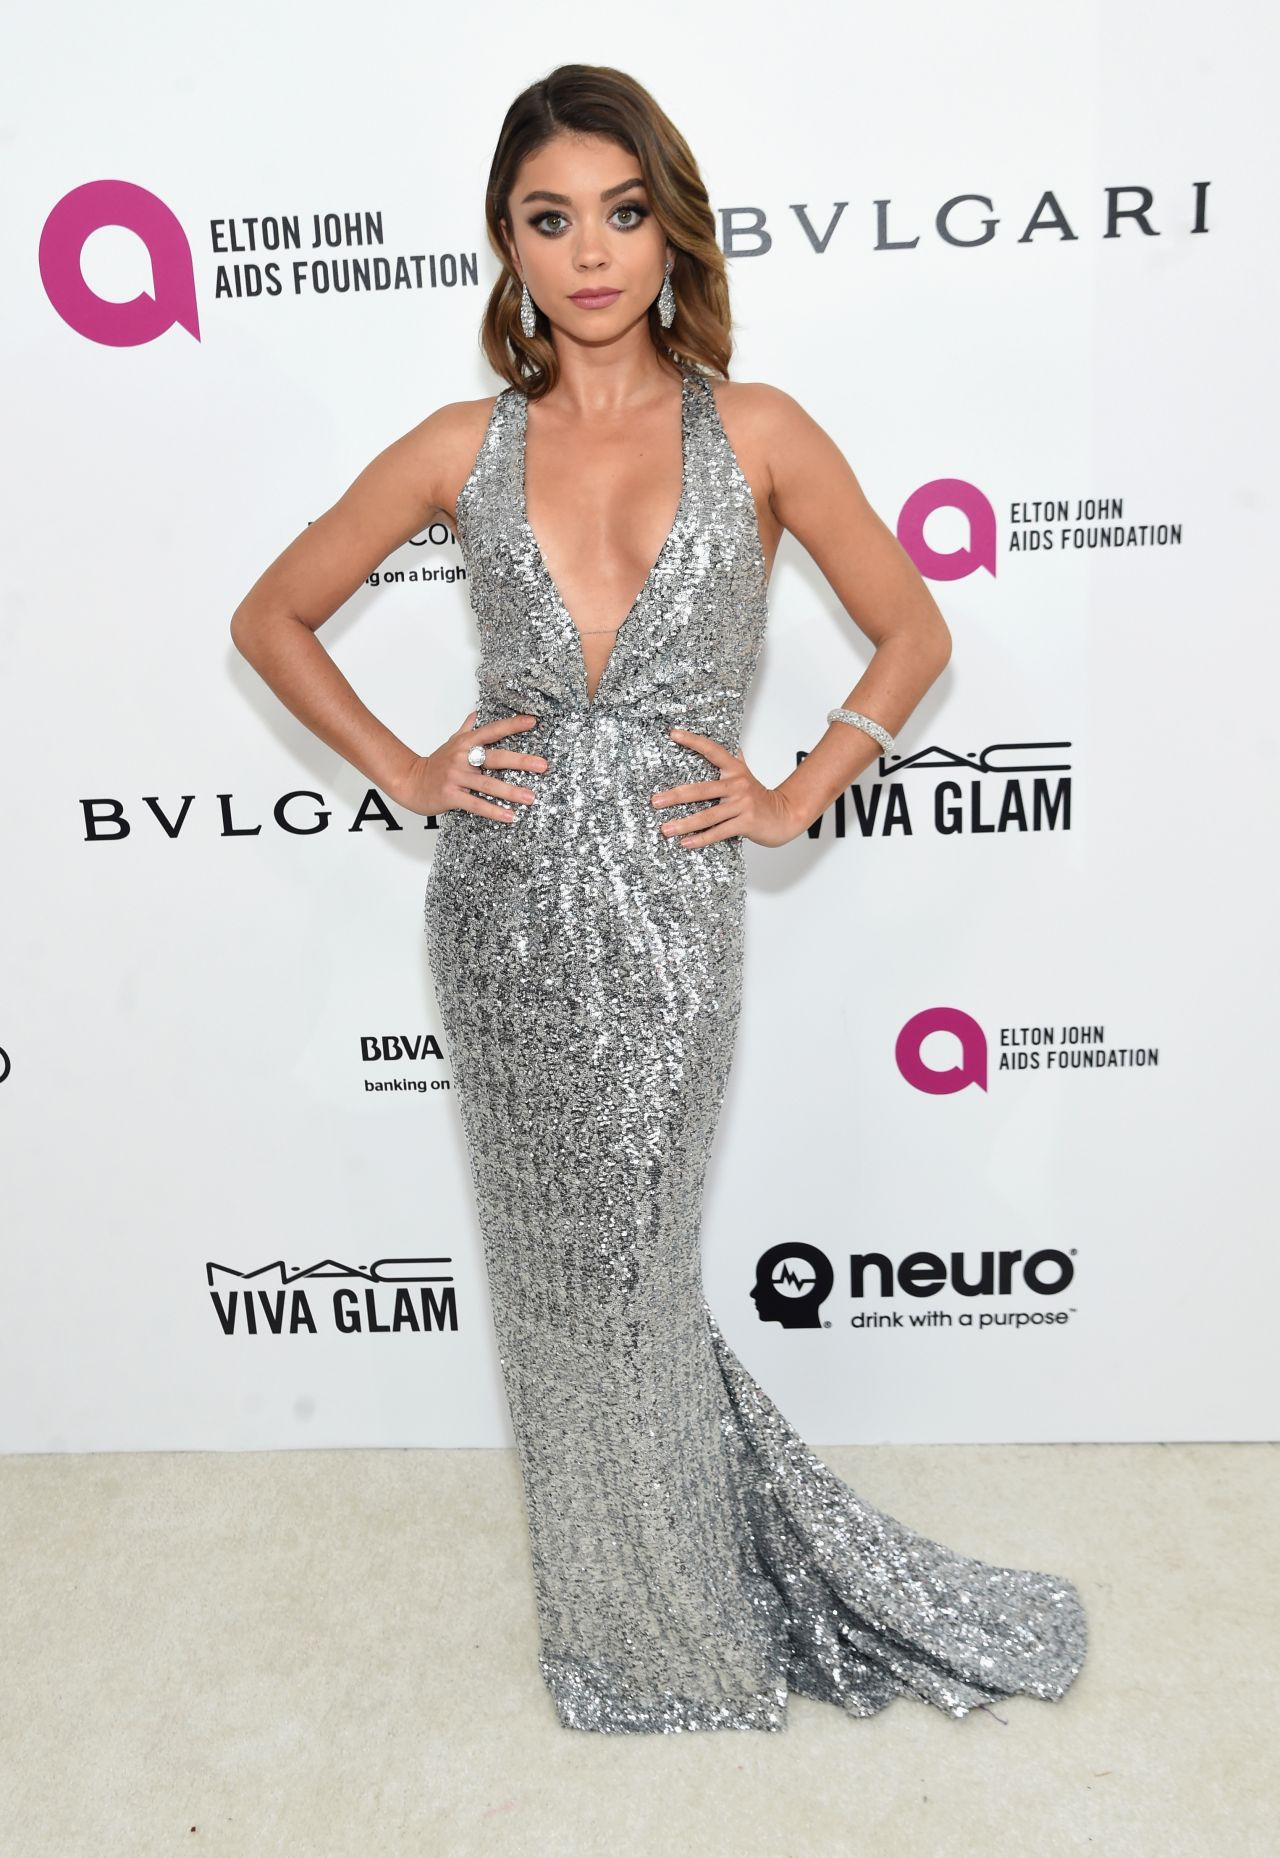 sarah-hyland-2016-elton-john-aids-foundation-s-oscar-viewing-party-in-west-hollywood-ca-3